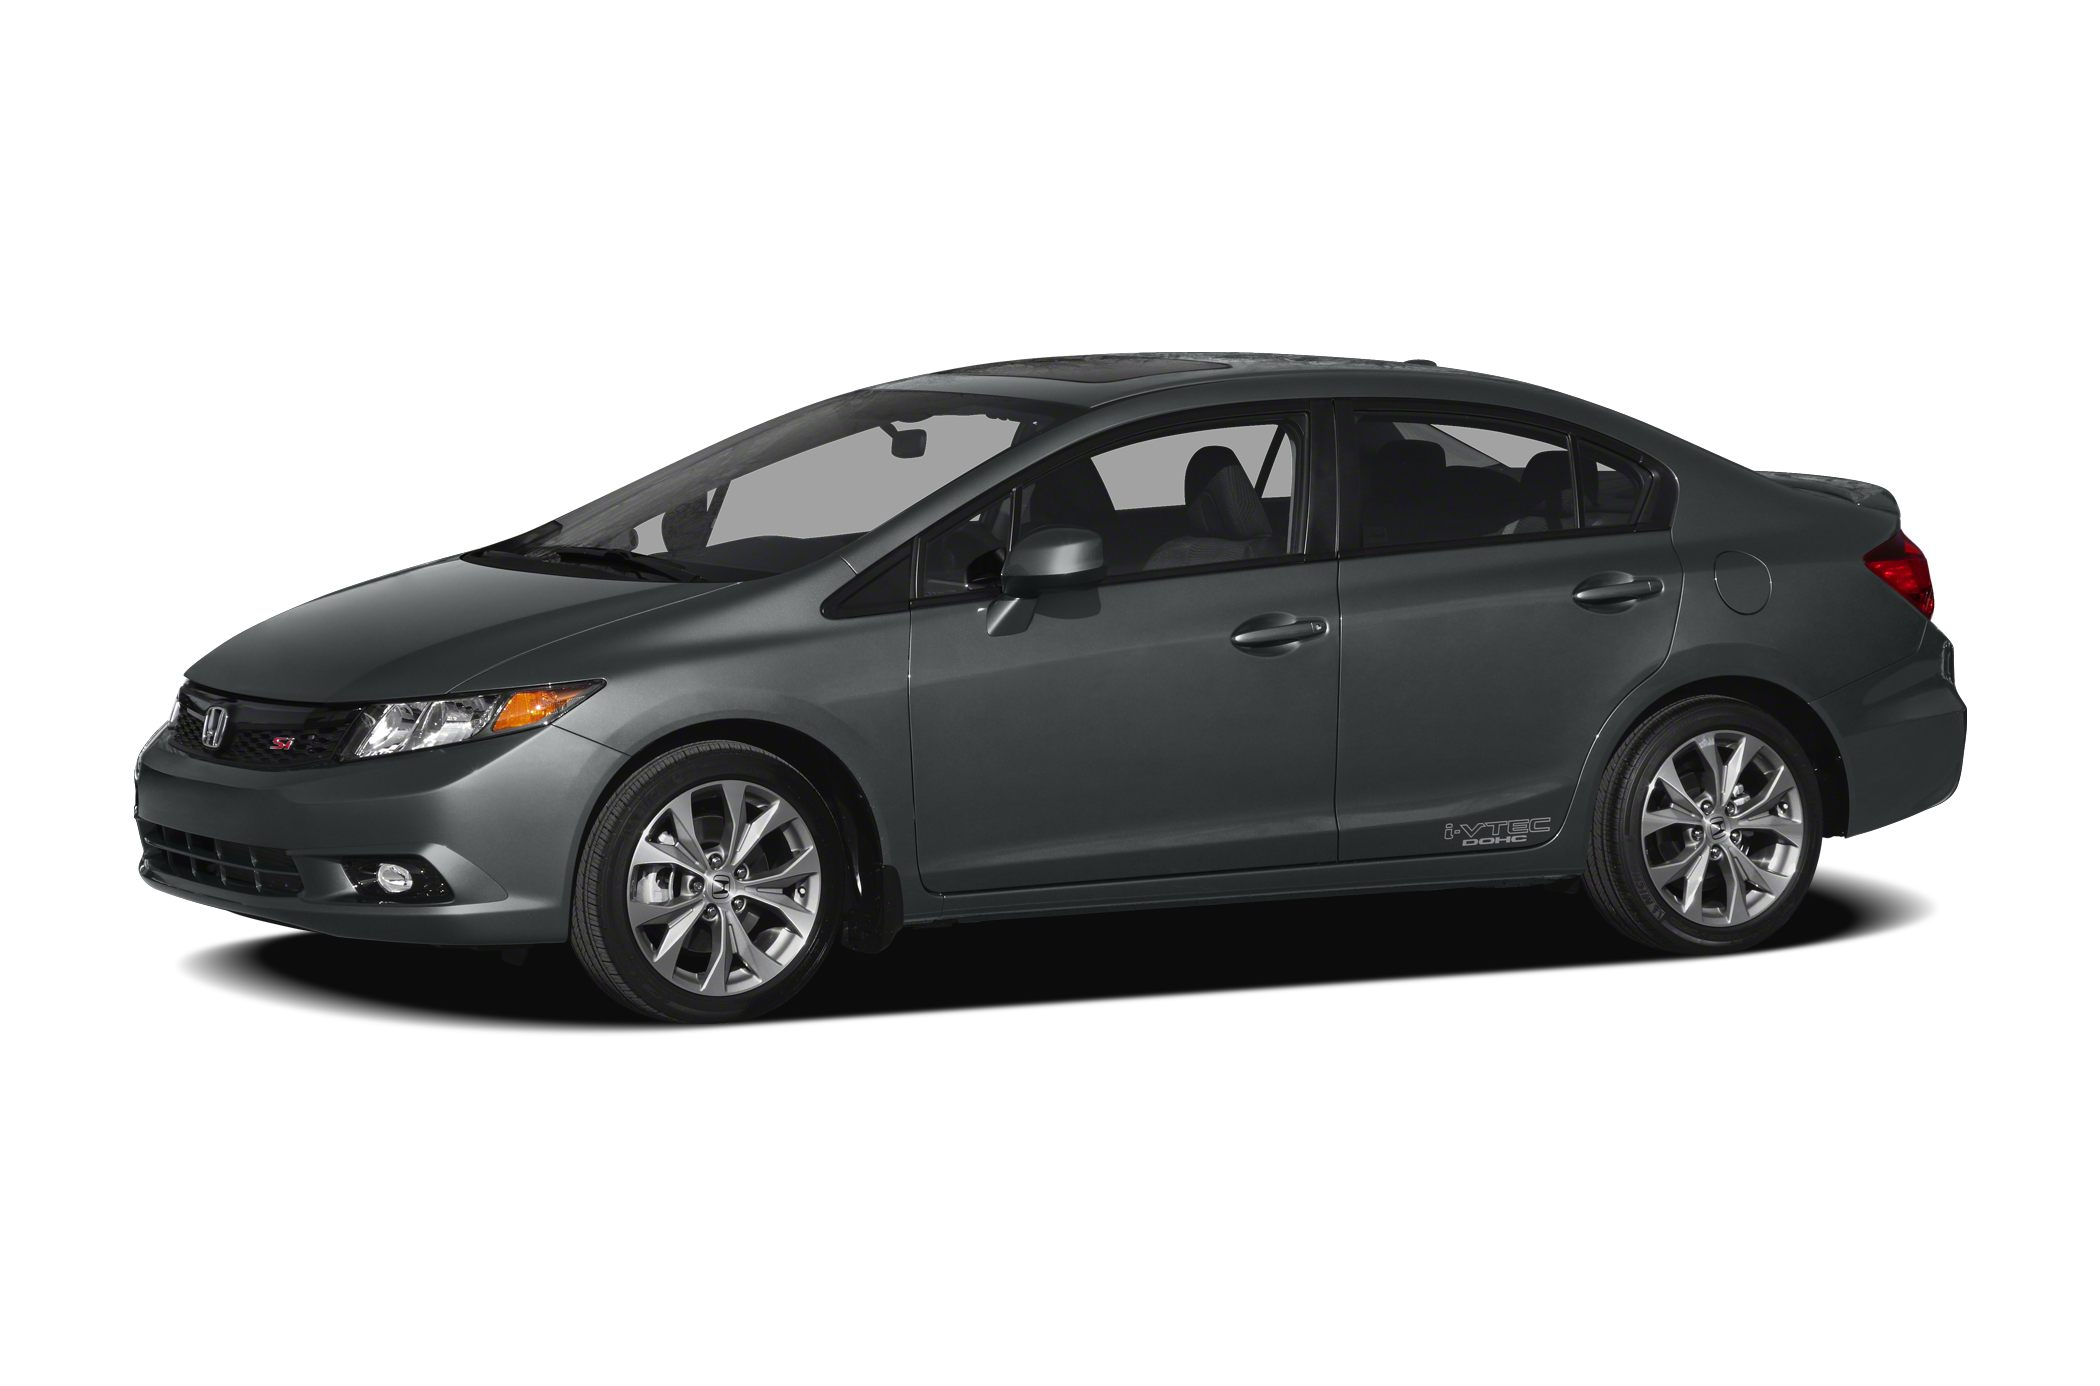 2012 Honda Civic Si Coupe for sale in San Bernardino for $17,989 with 37,217 miles.